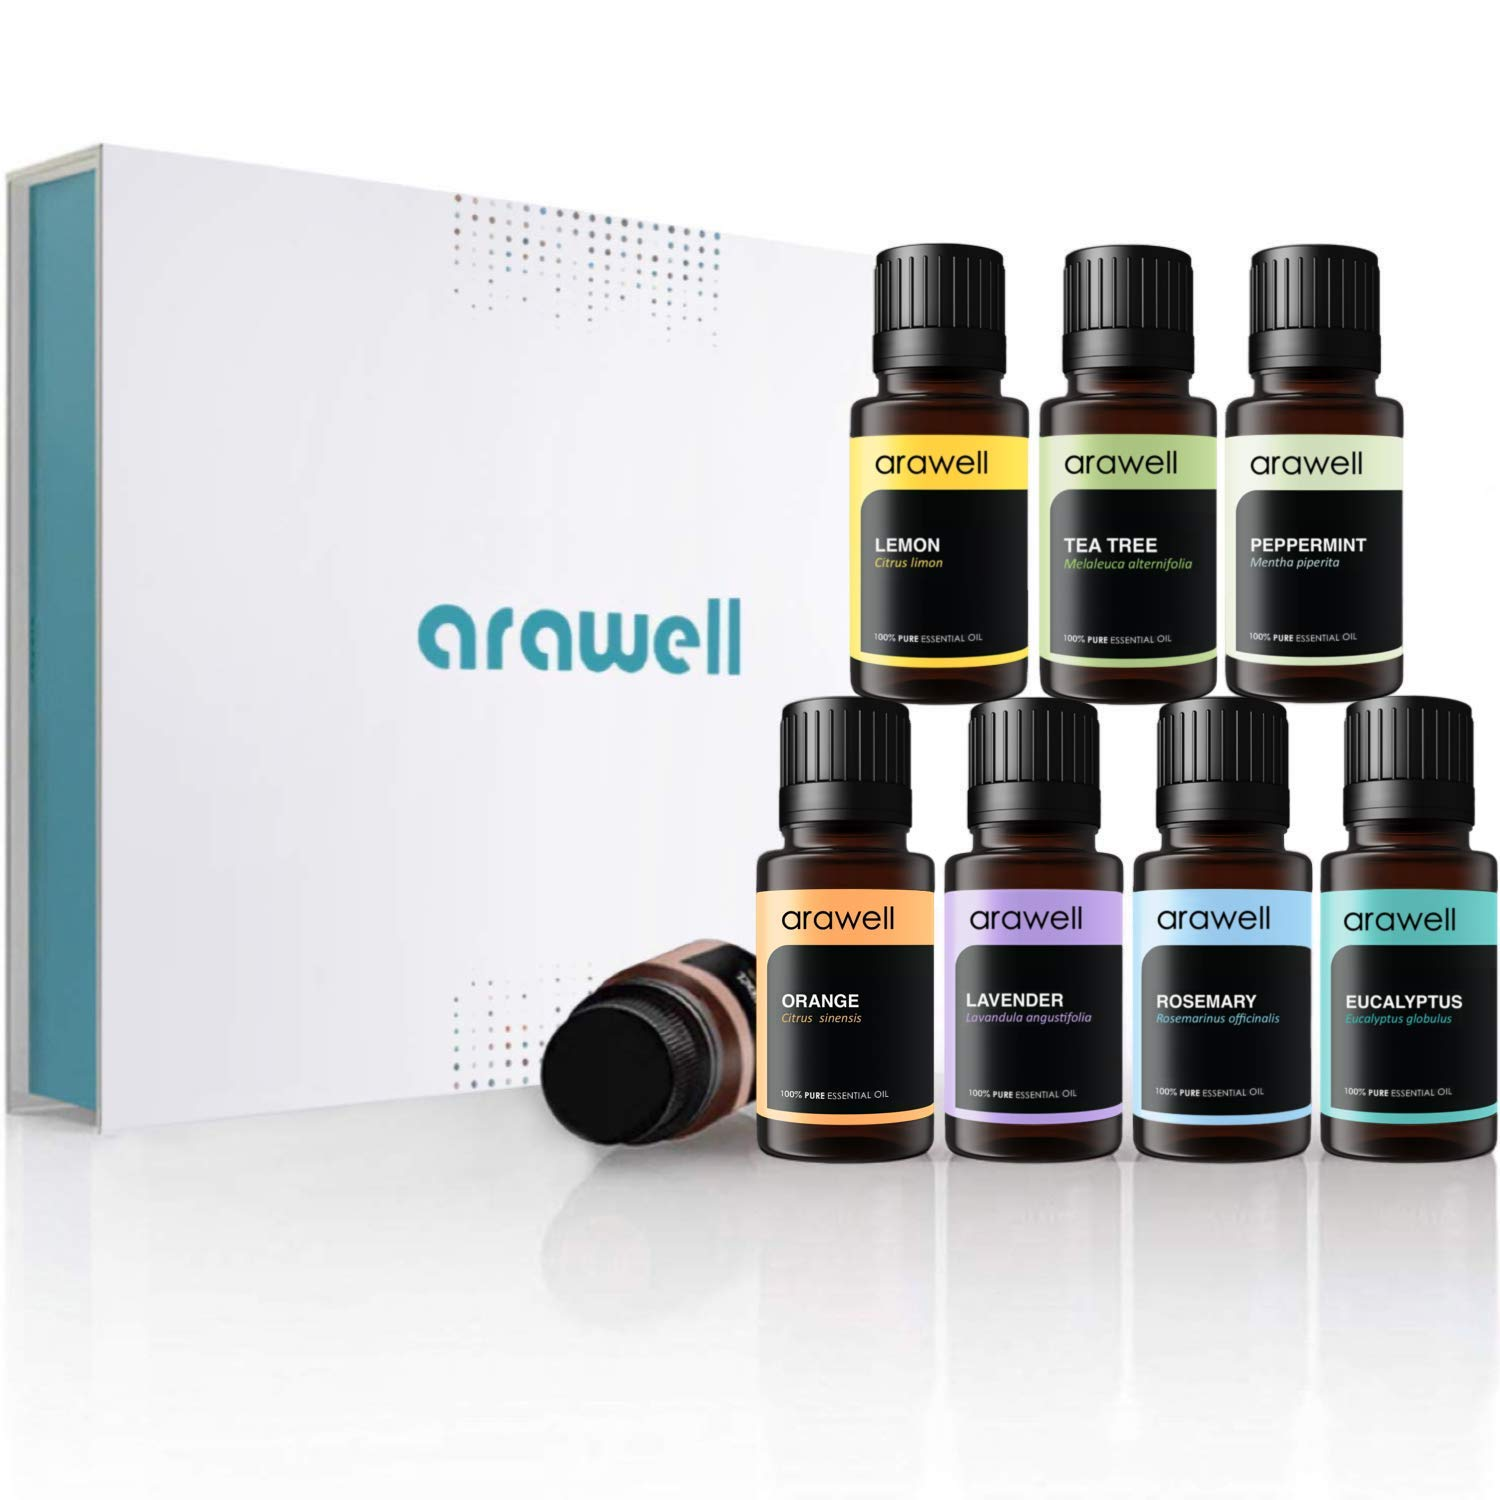 Essential Oils Set, Arawell Top 8 100% Pure Therapeutic Grade Aromatherapy Oil Gift Kit for Diffuser - Lavender, Tea Tree, Peppermint, Rosemary, Frankincense, Sweet Orange, Lemon, and Eucalyptus